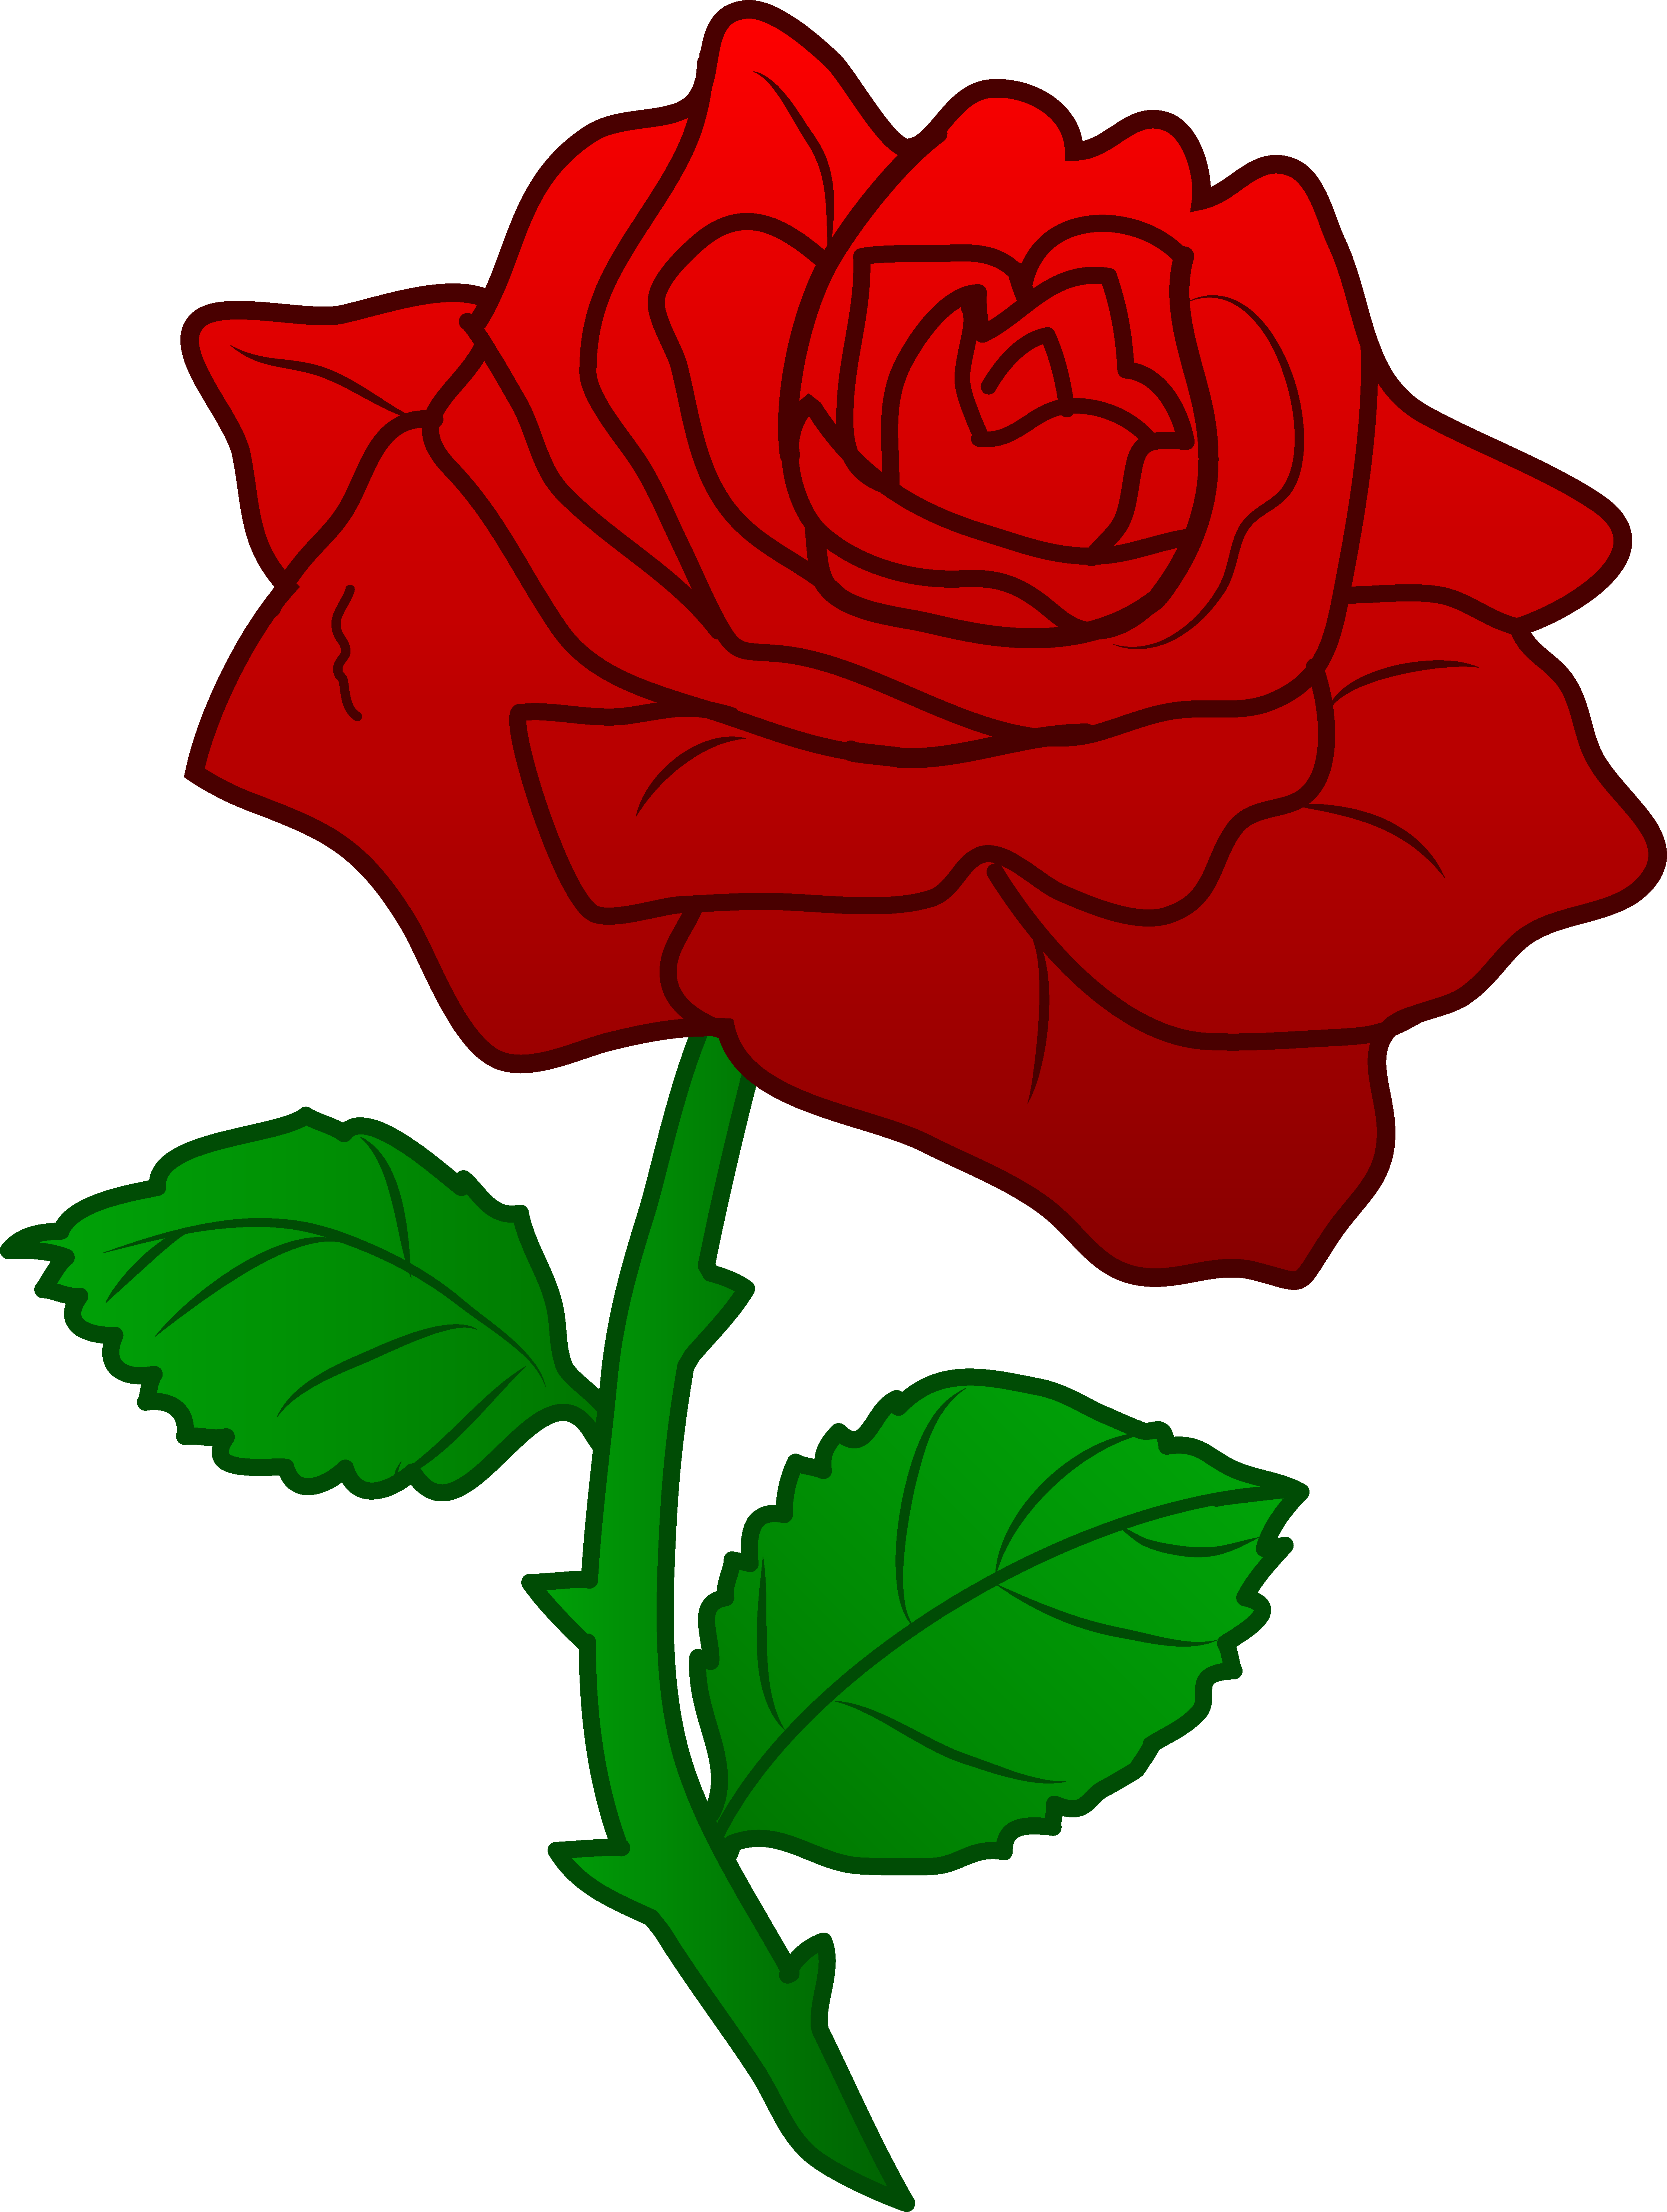 Rosa clipart clipart images gallery for free download.